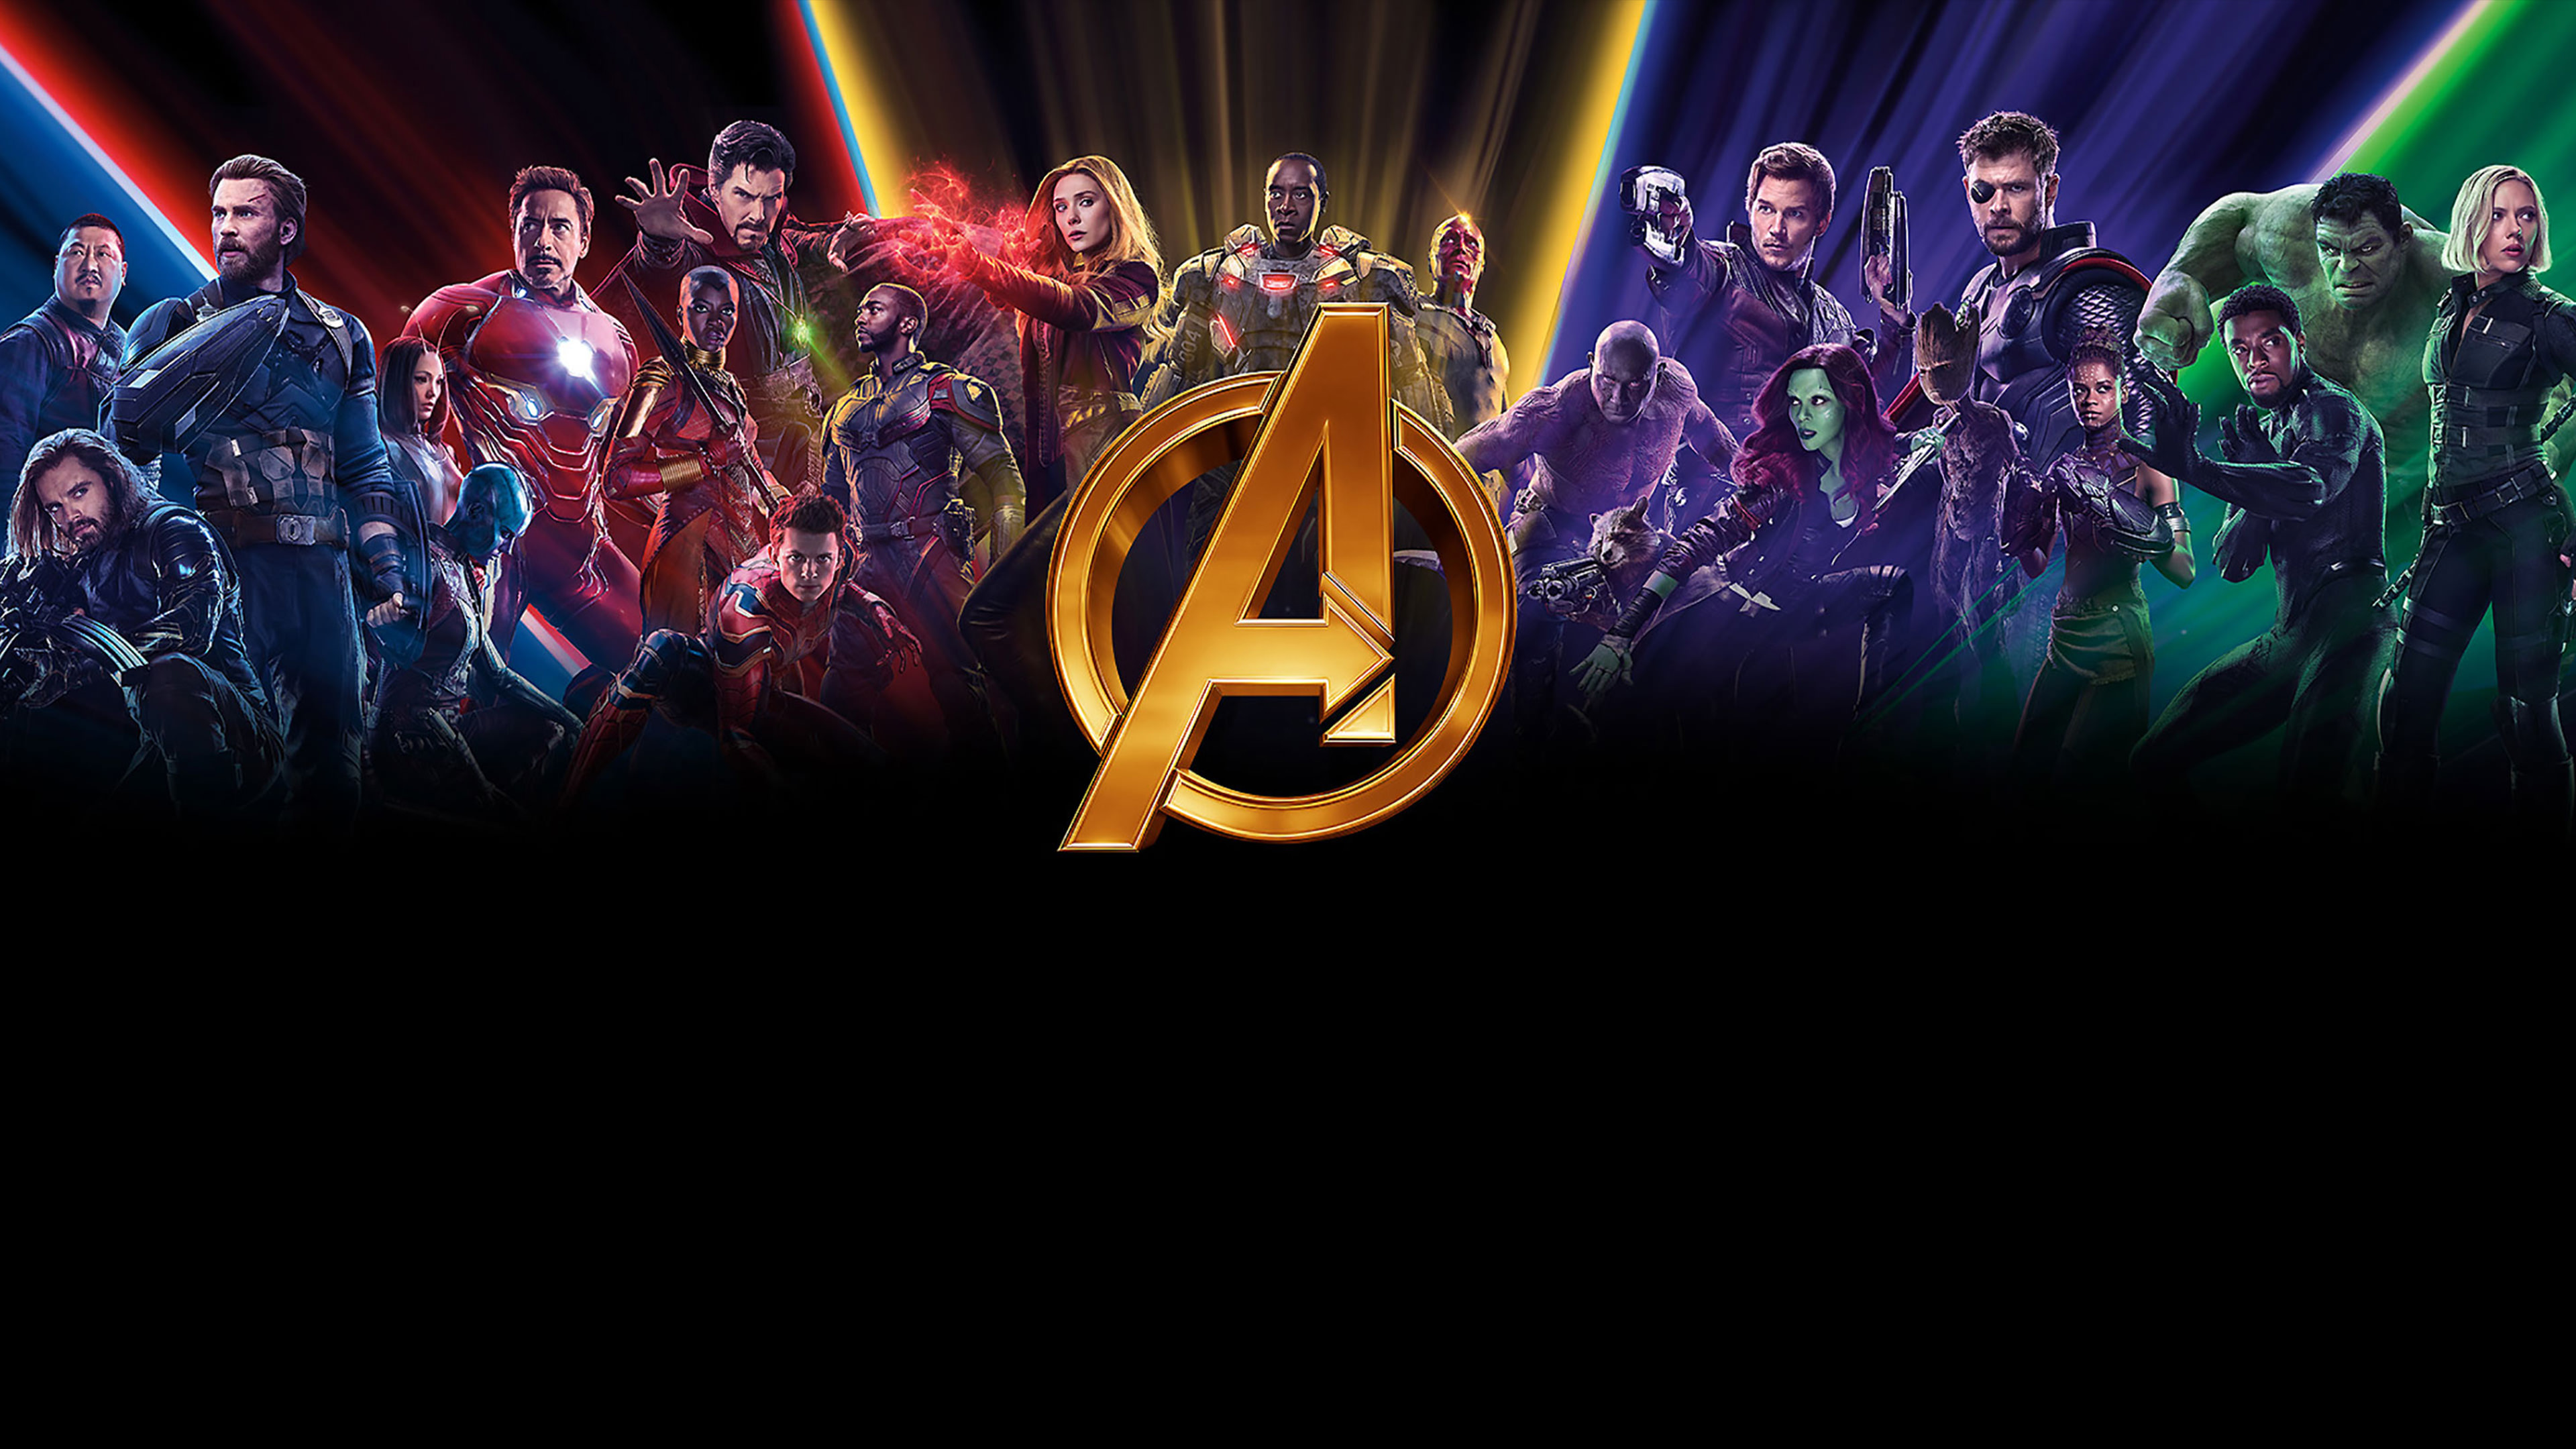 Avengers Infinity War 4k Ultra Hd Wallpaper Background